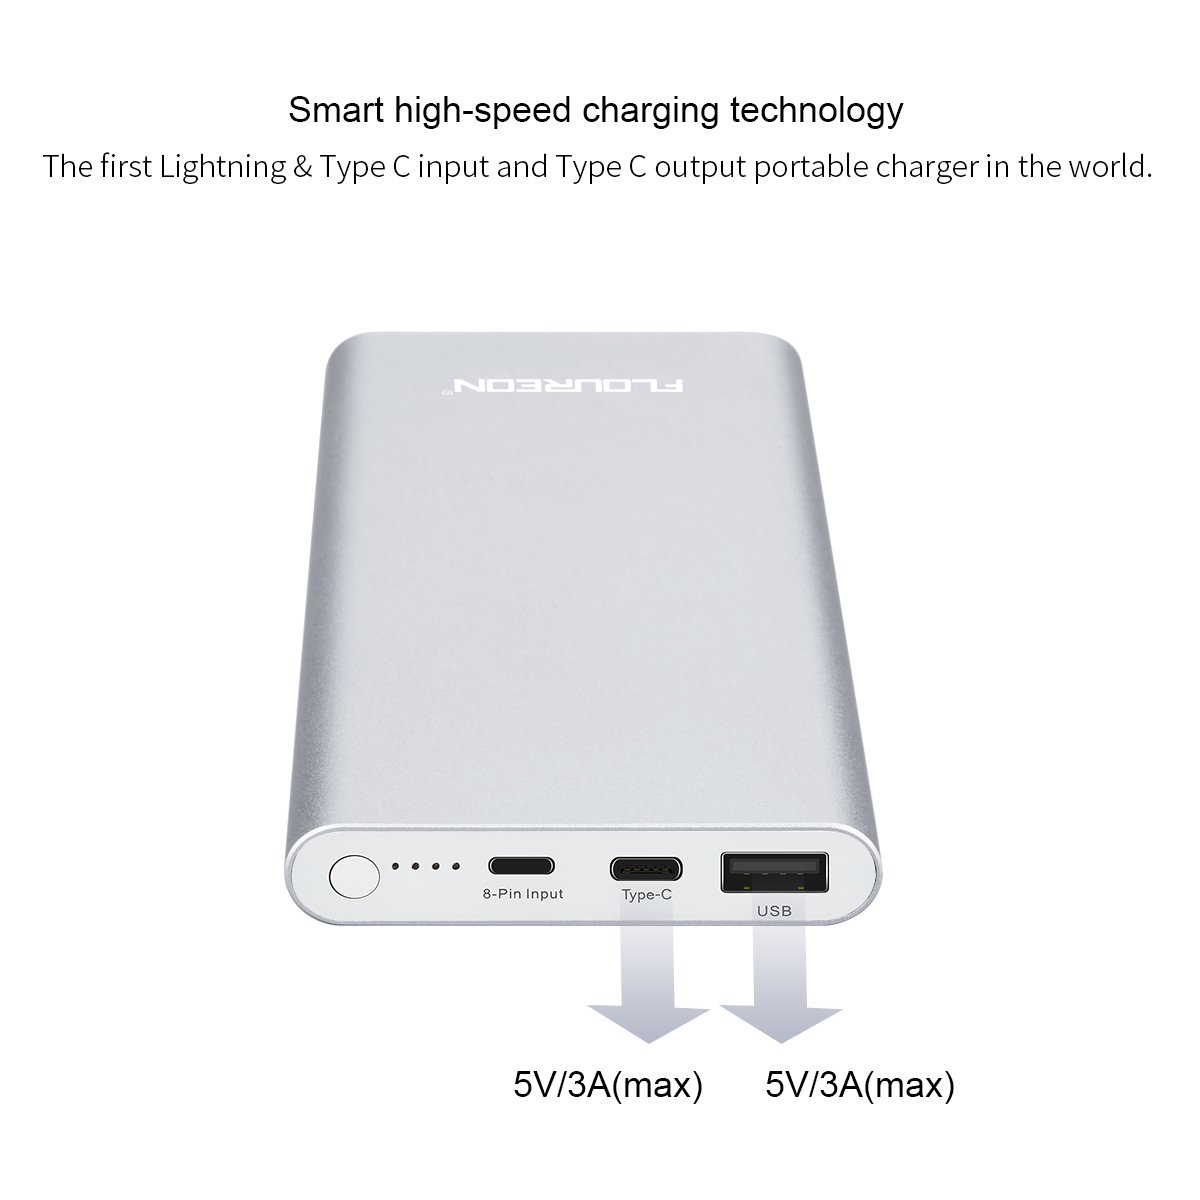 FLOUREON 12,000mAh Lighting Power Bank Portable Phone Charger with High-Speed Lighting Type C Input/Output, 3A Fast Charging External Battery Charger with High-Speed Lighting Type C Input/Output, 3A Fast Charging for iPhone 8/ 8 Plus/ X/ 7/